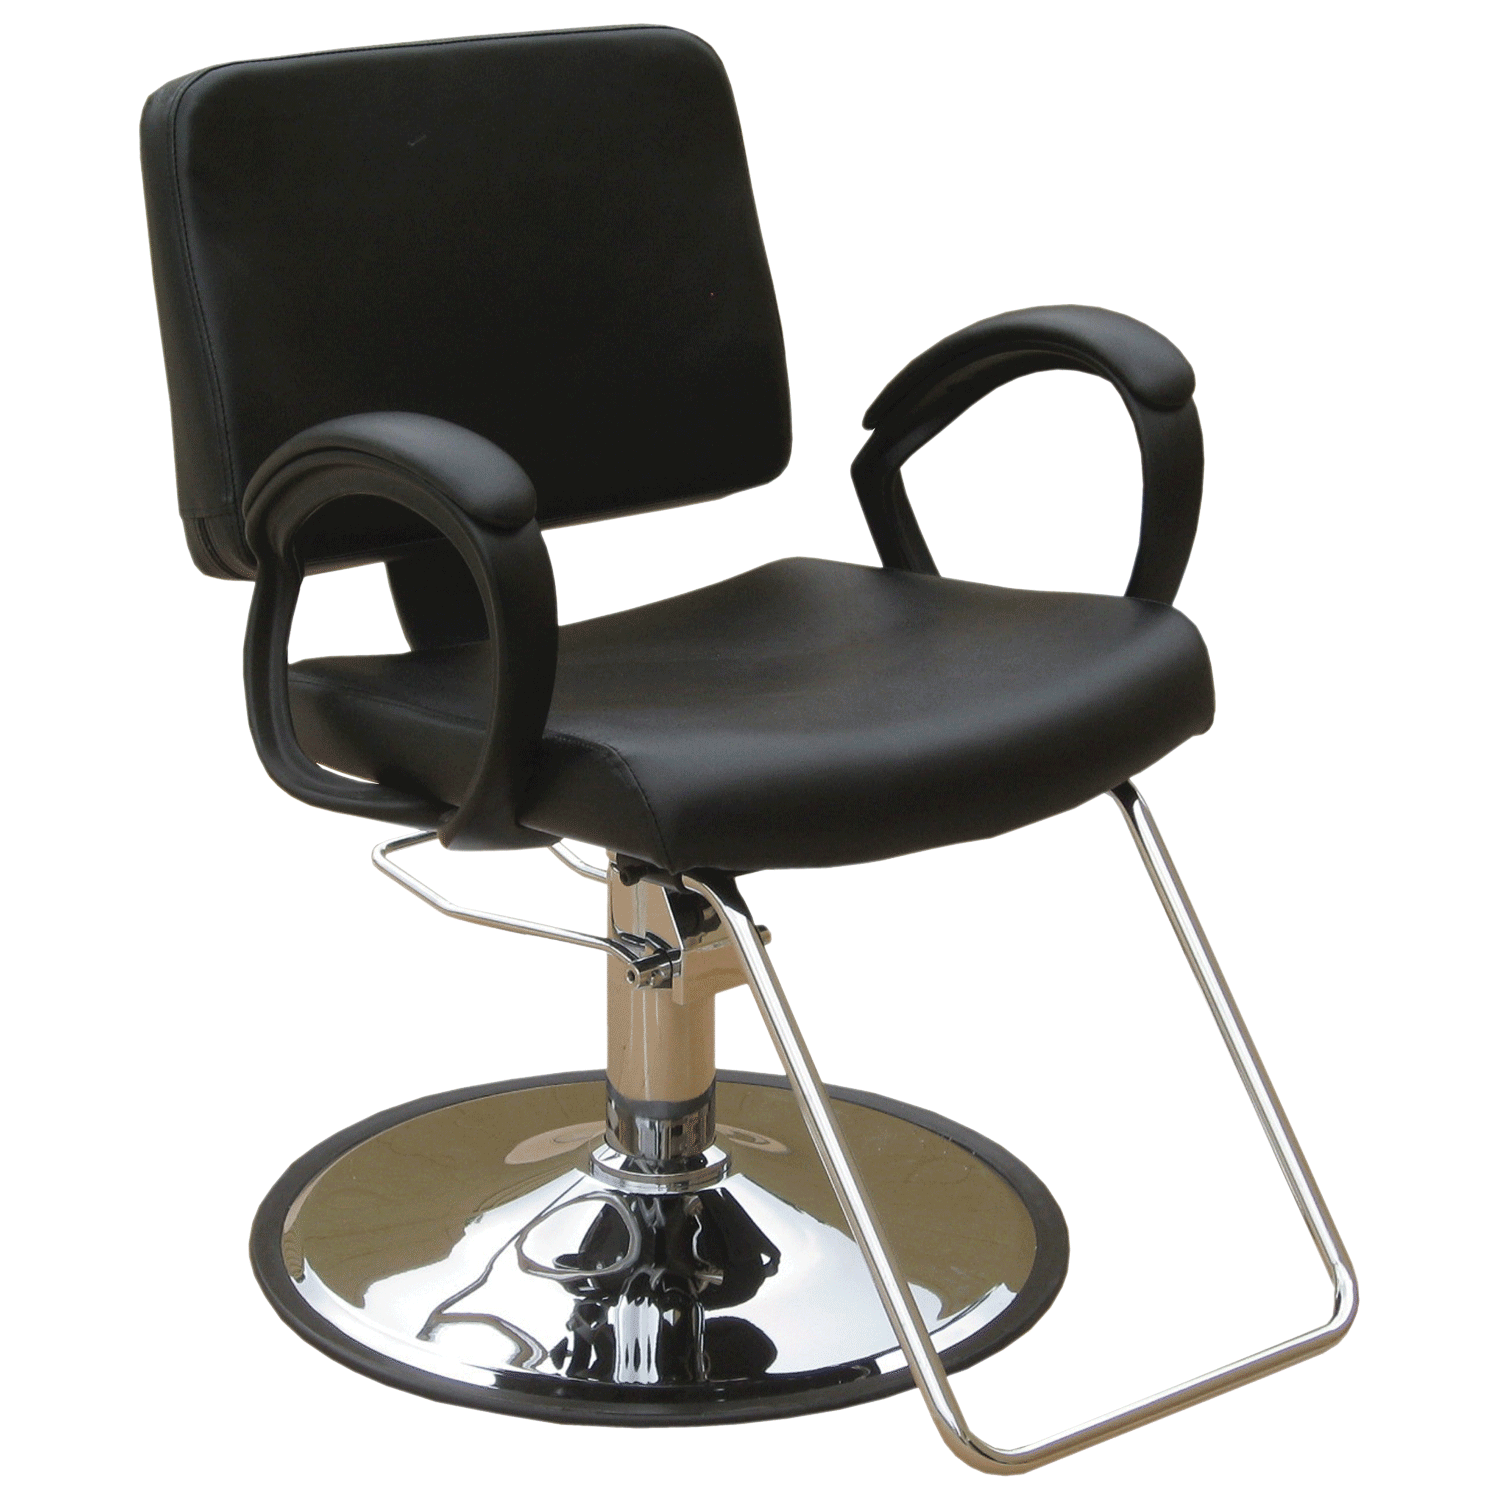 Hair stylist chair png. Puresana ava styling with